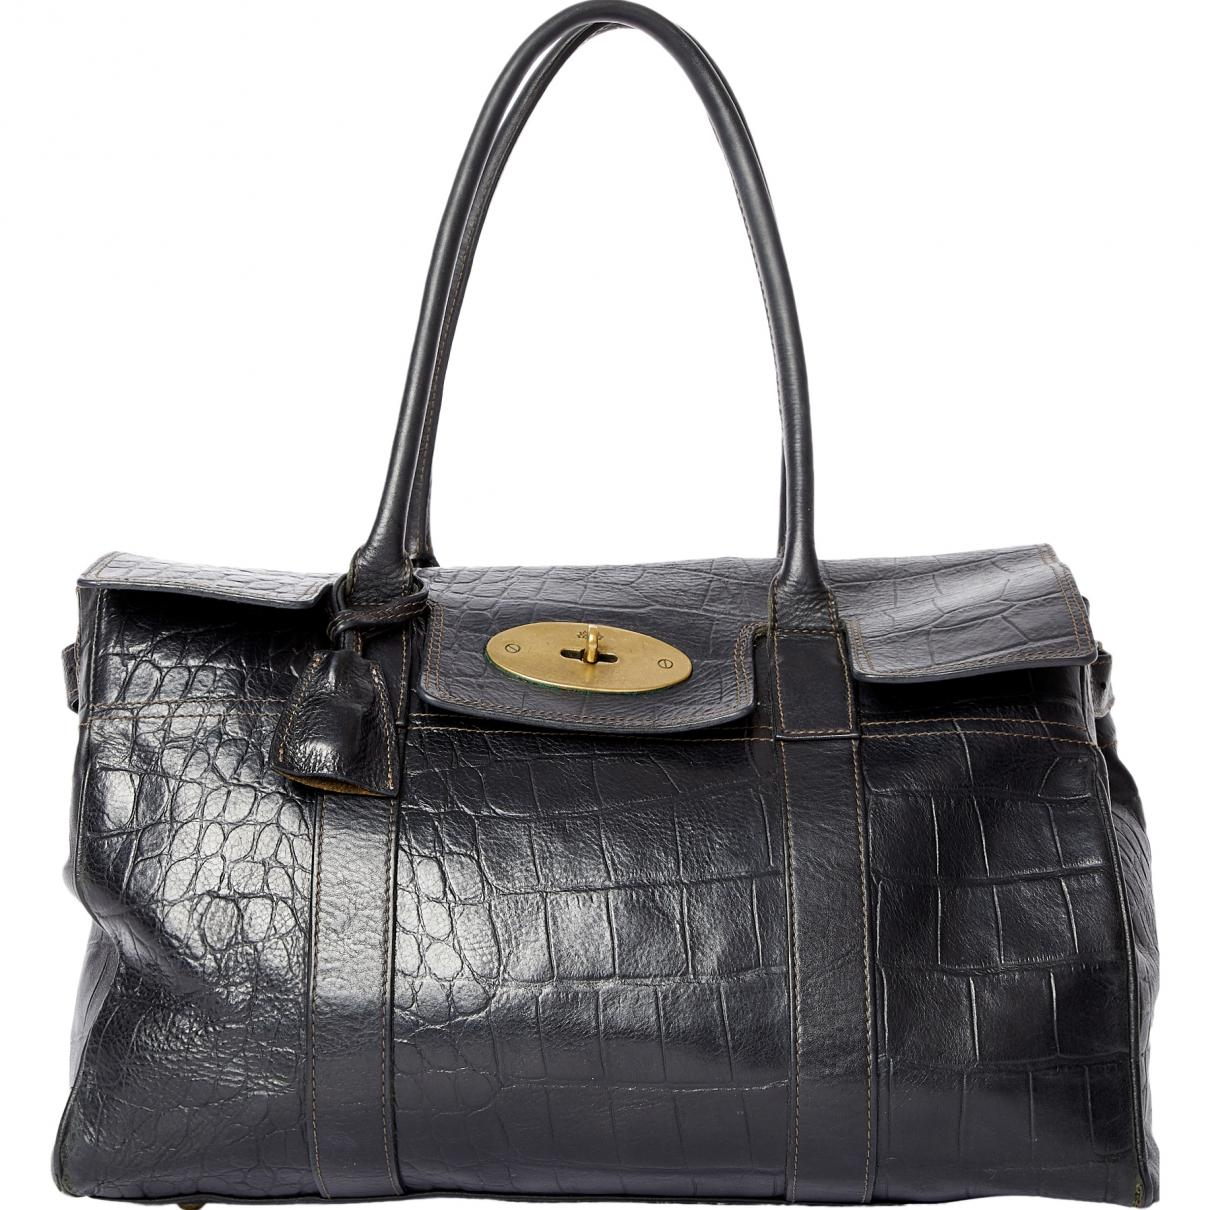 Mulberry. Women s Black Bayswater Leather Handbag.  641 From Vestiaire  Collective f1a3beba8c082